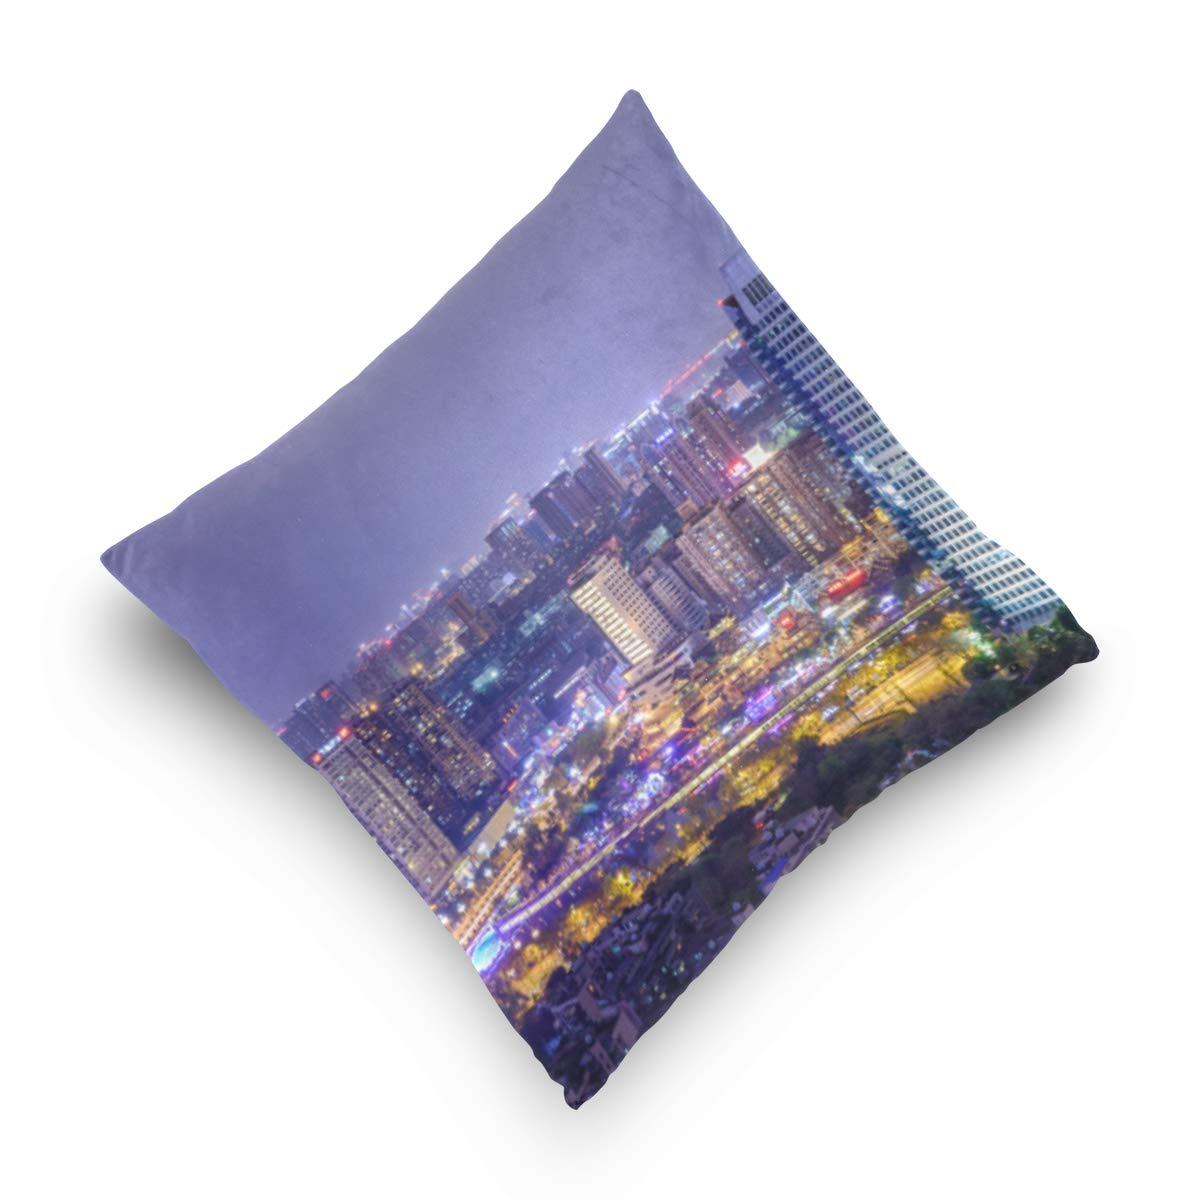 Amazon.com: Pillow Case Cover Cushion Cover City Night View ...